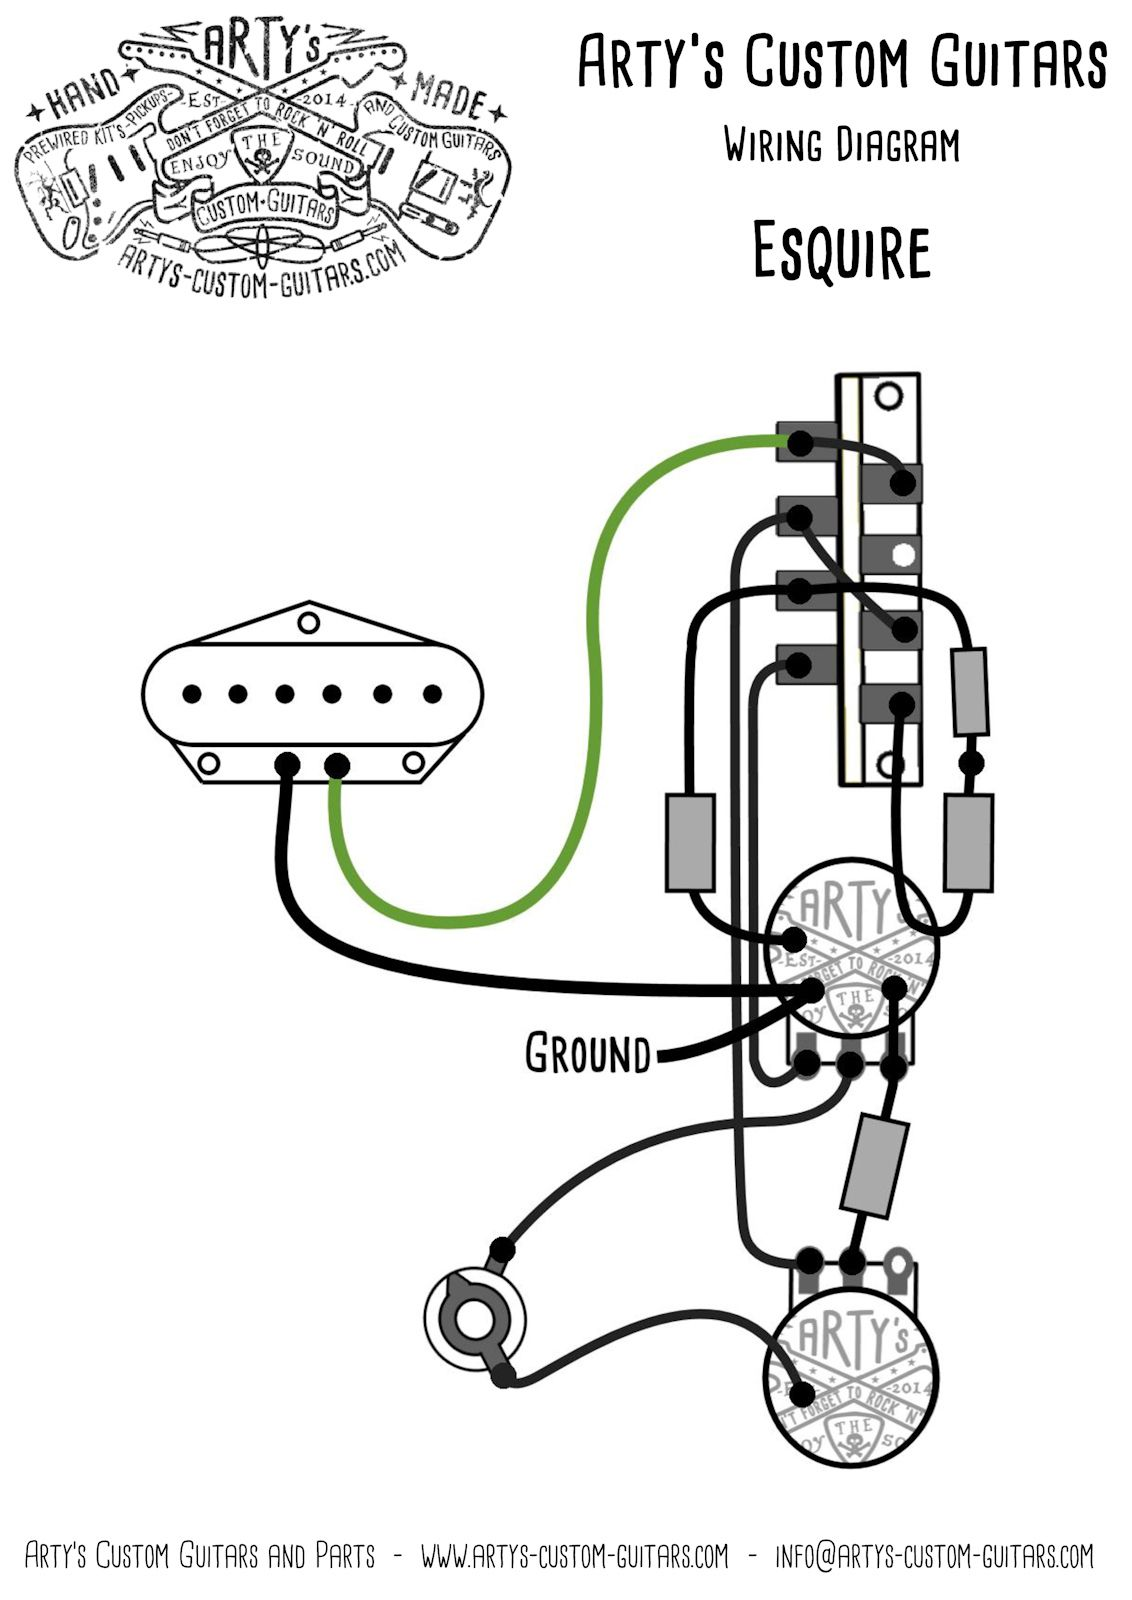 Esquire Wiring Diagram Prewired Kit Arty\u0027s Custom Guitars Wiring Custum Fender Esquire Wiring